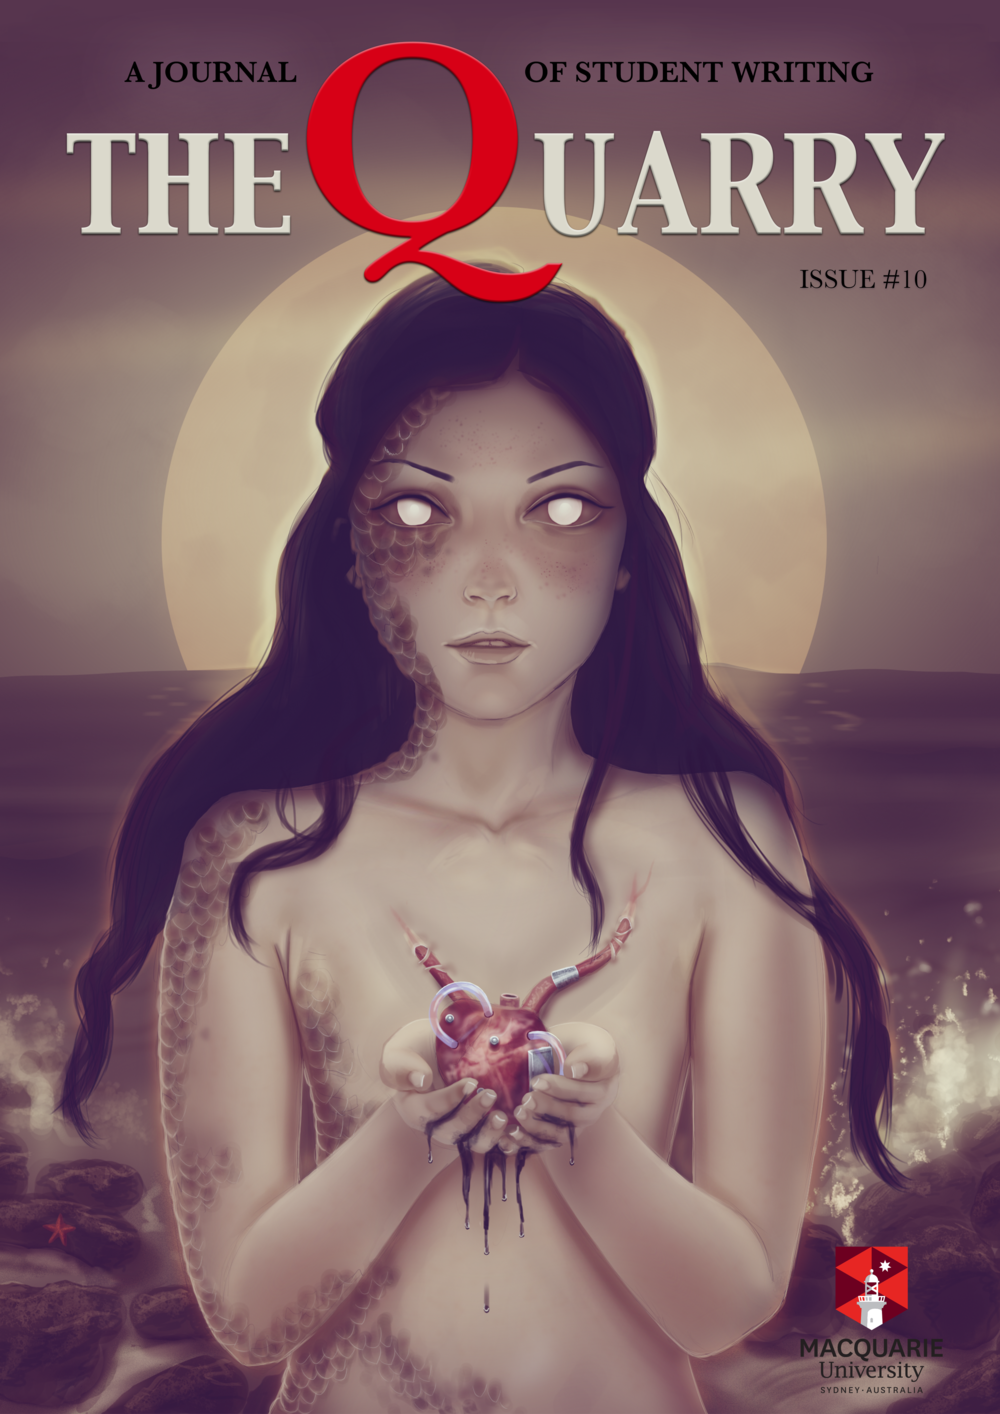 Cover art by Ailie MacKenzie, design by Teresa Peni